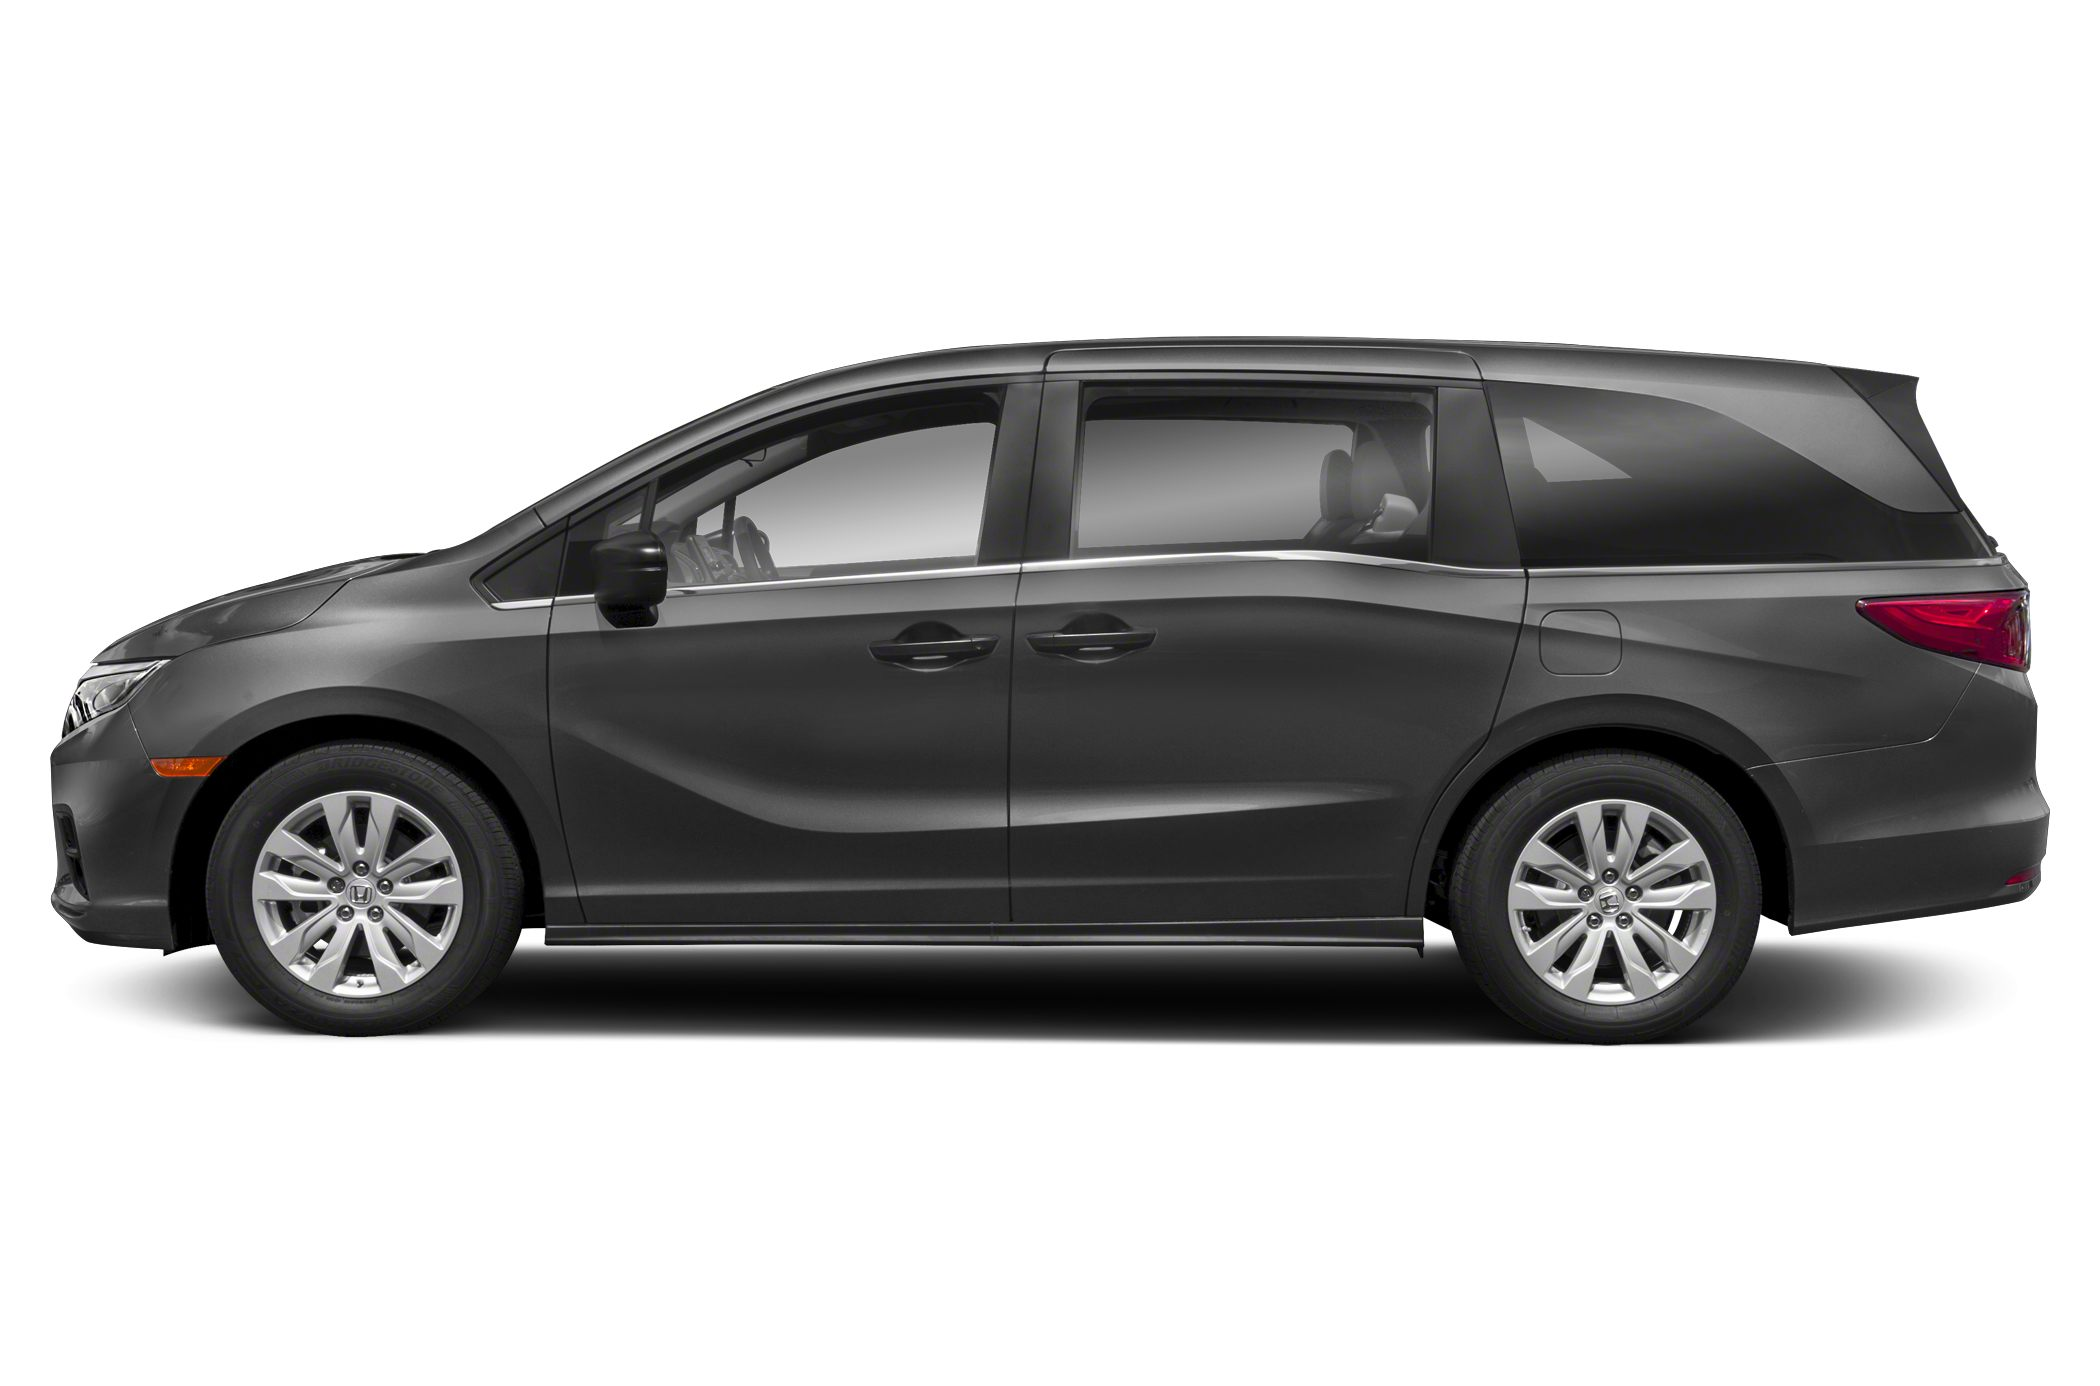 2018 Honda Odyssey Deals, Prices, Incentives & Leases ...